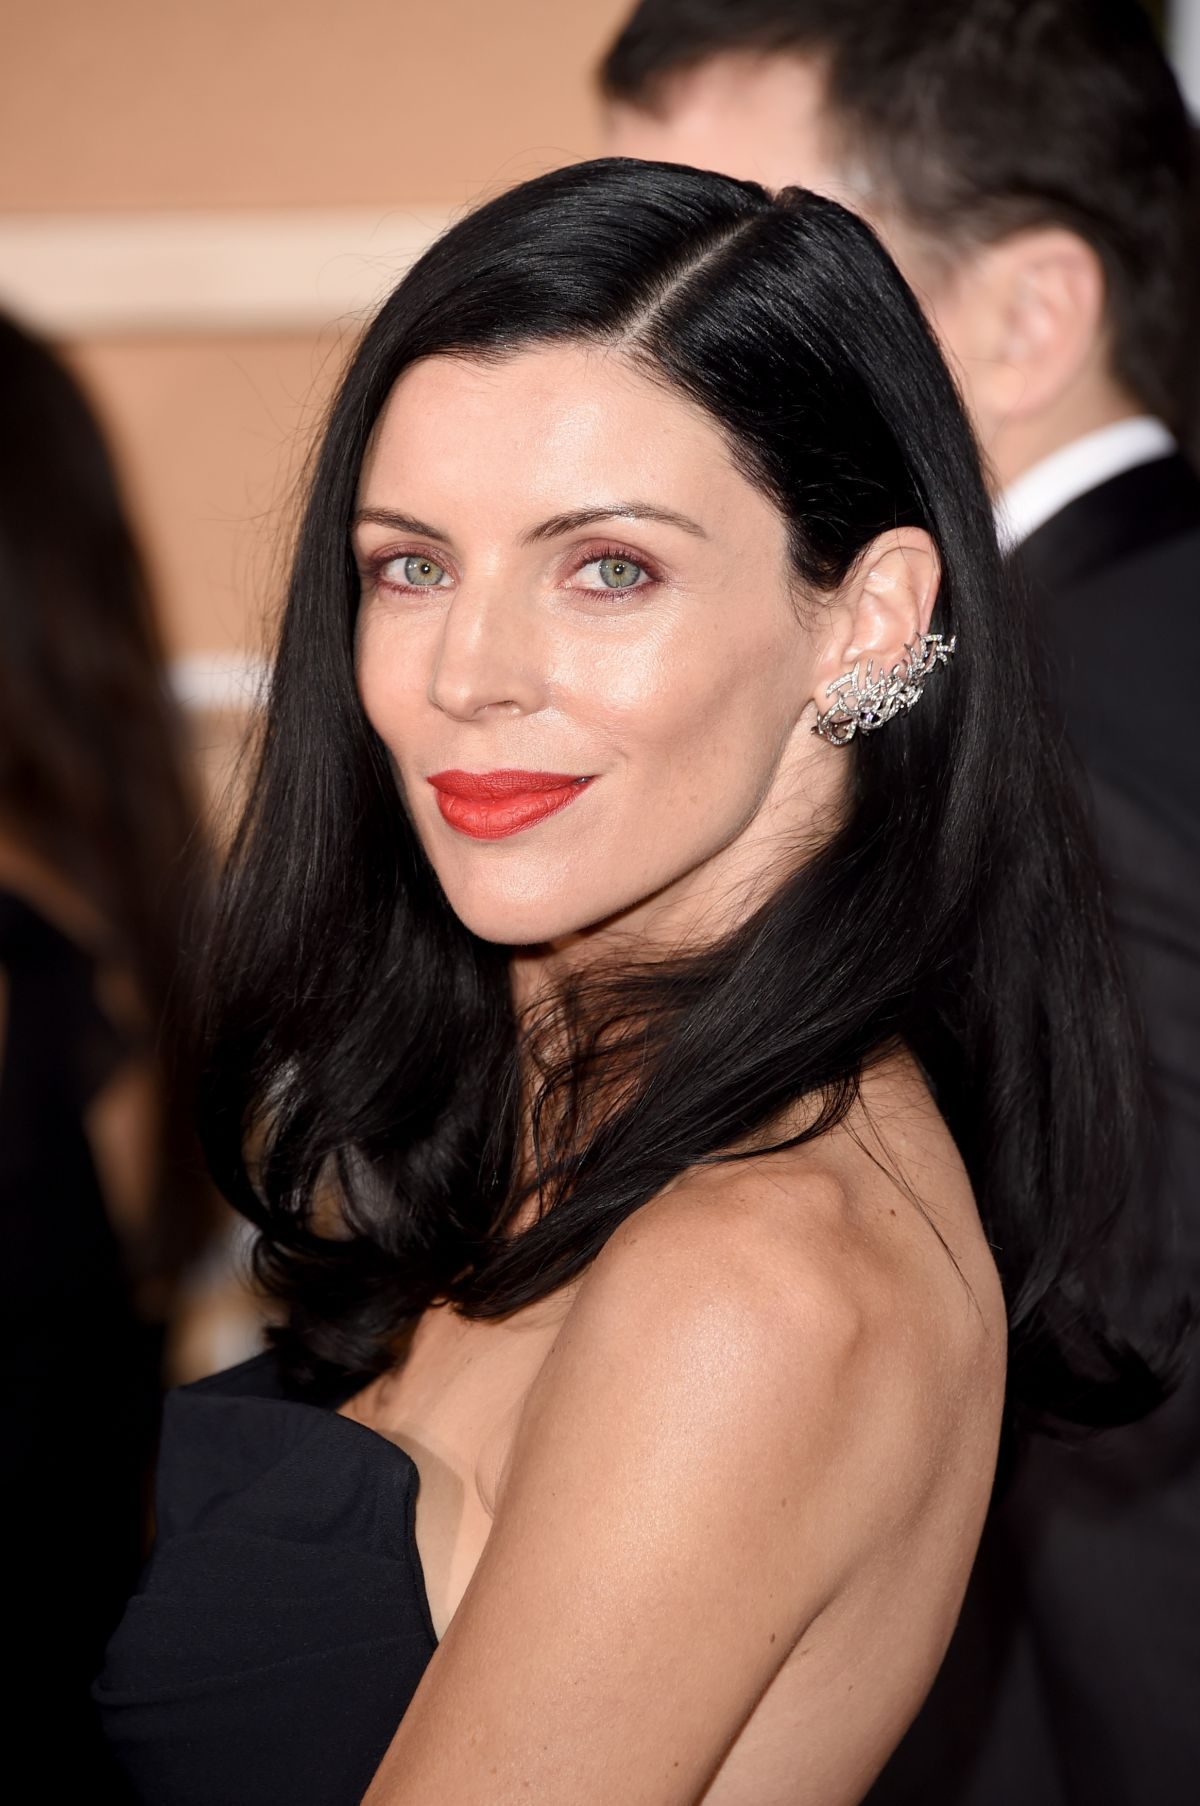 LIBERTY ROSS at 2015 Golden Globe Awards in Beverly Hills - HawtCelebs ...